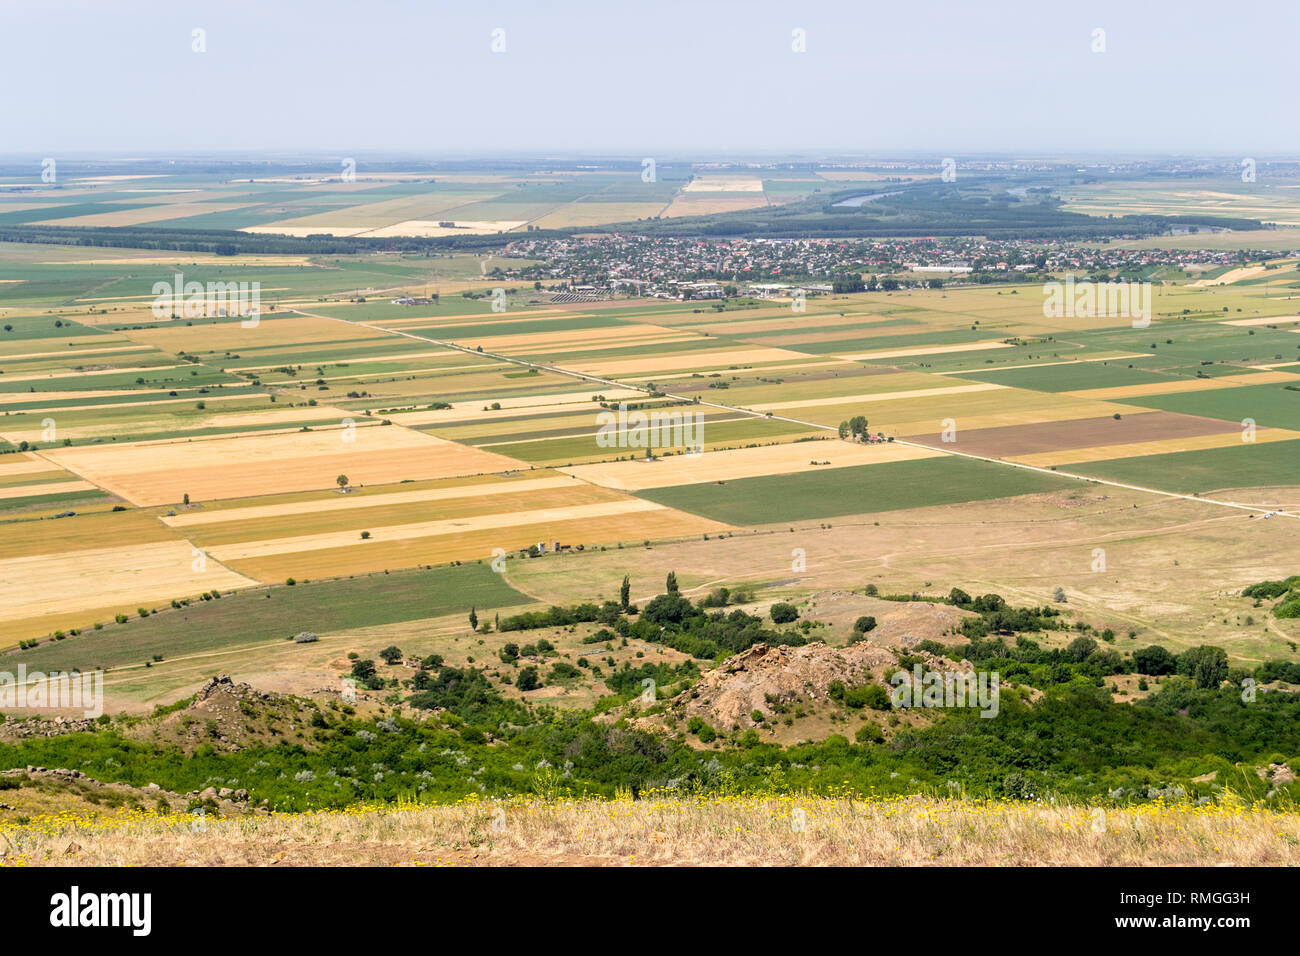 Aerial view of farm lands with crop fields in Dobrogea, Romania, on a hot, late summer day - agriculture in south-east of Europe - Stock Image